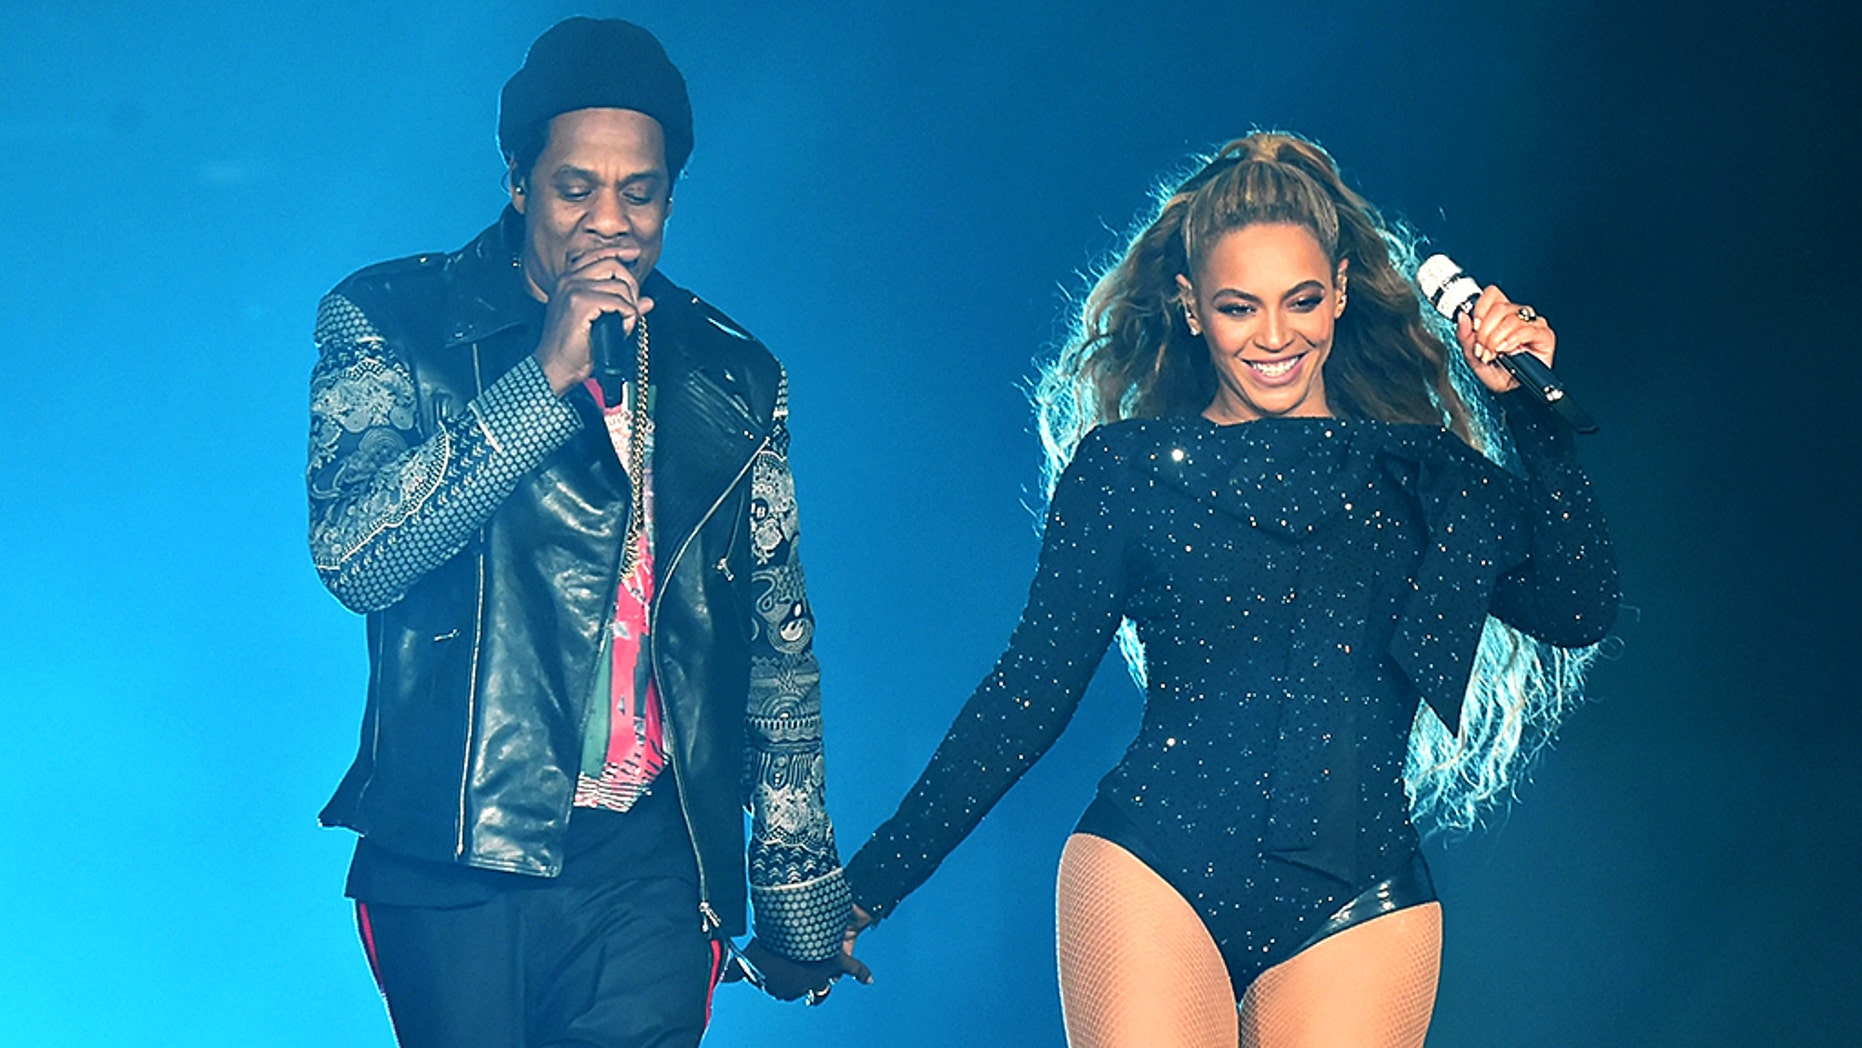 Go vegan and get Beyonce/Jay-Z tickets for life